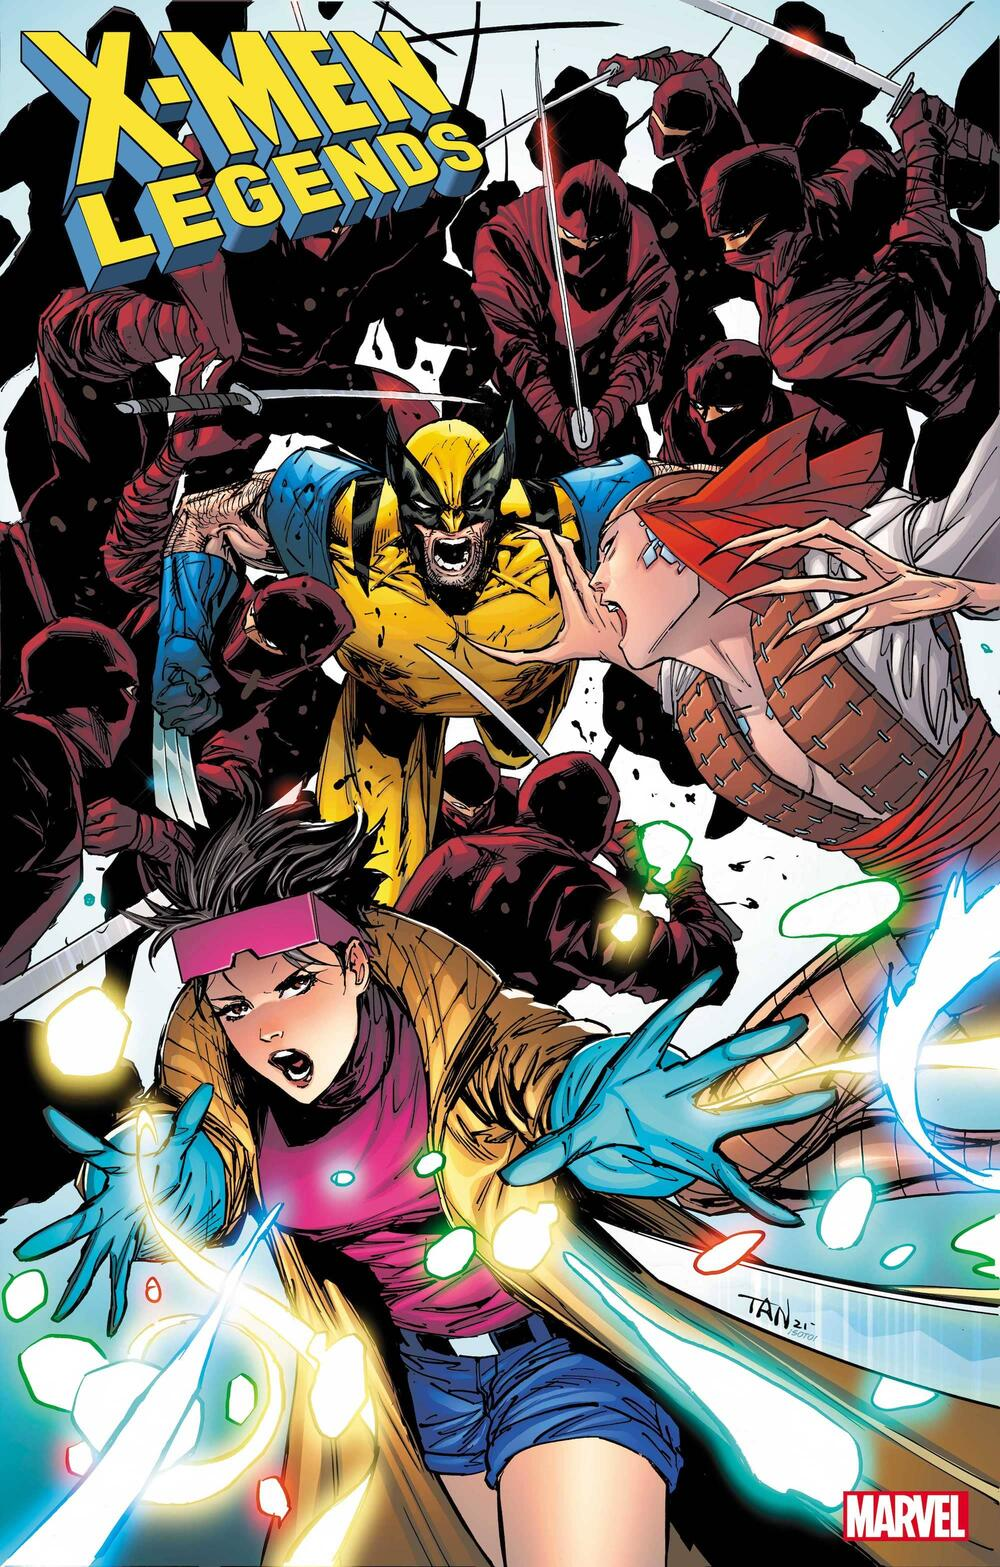 X-MEN LEGENDS #7 cover by Billy Tan